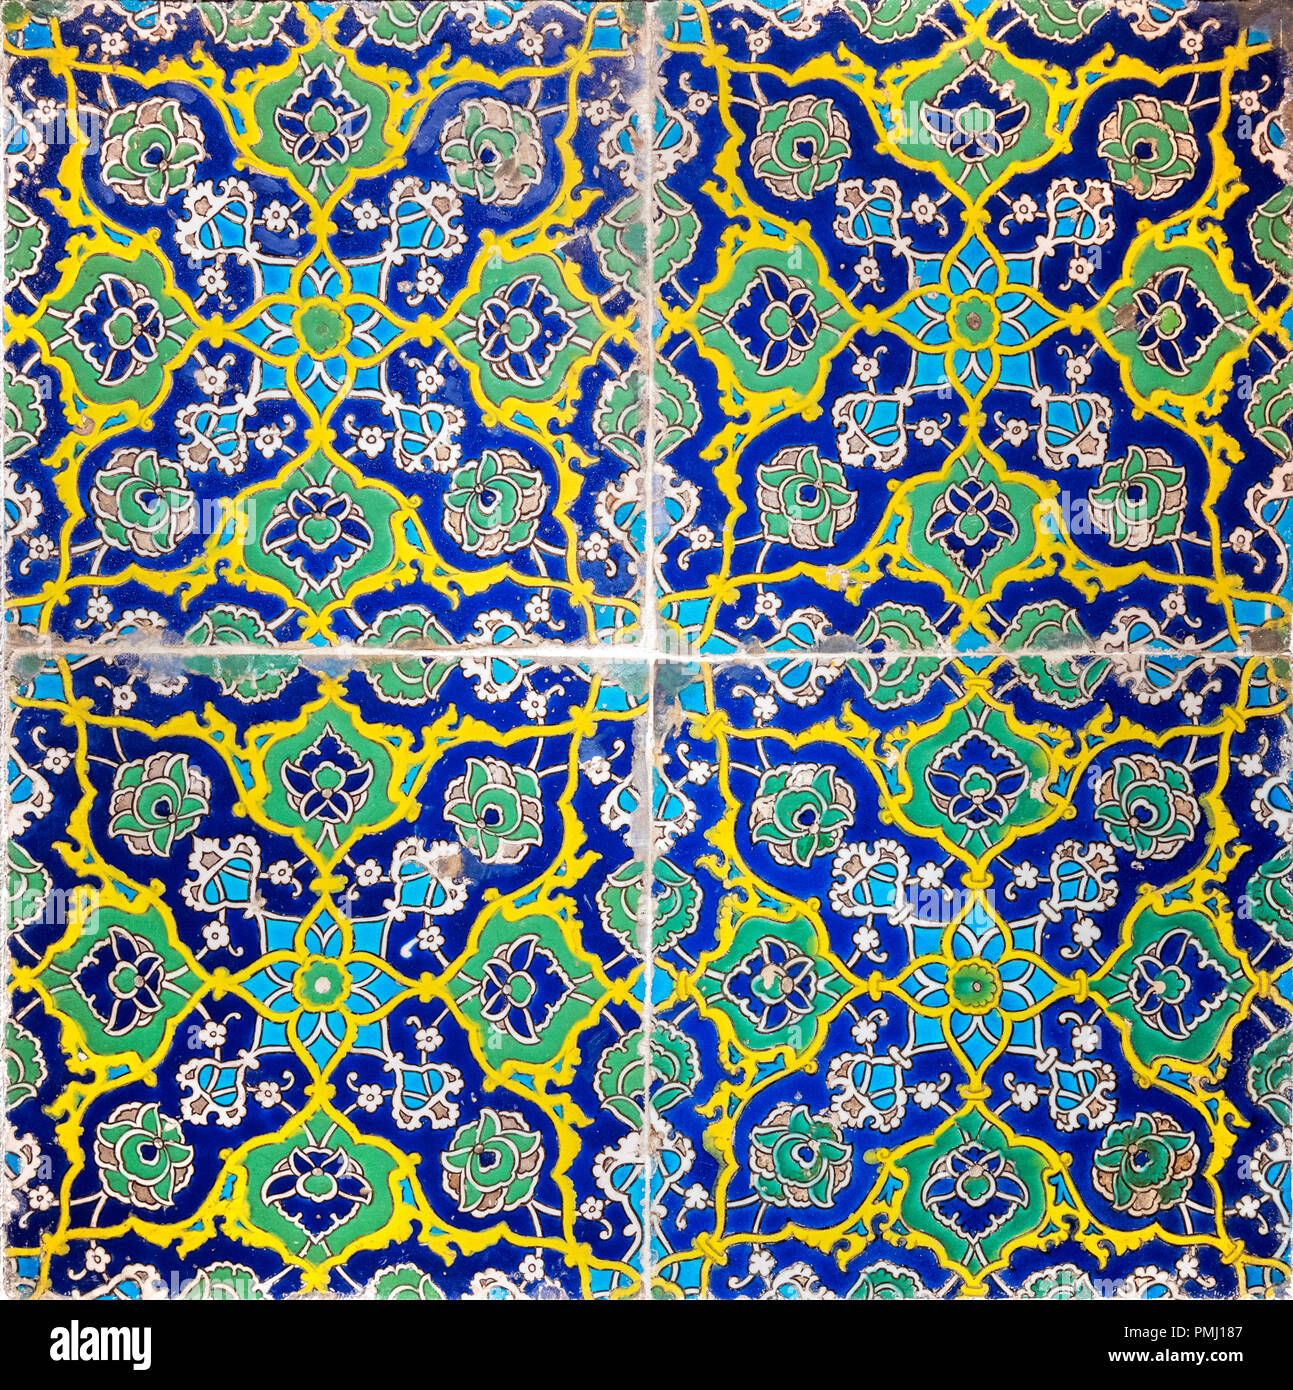 Early 16th Century Turkish wall tiles, Ottoman period, decorated in 'cuerda seca' technique. - Stock Image